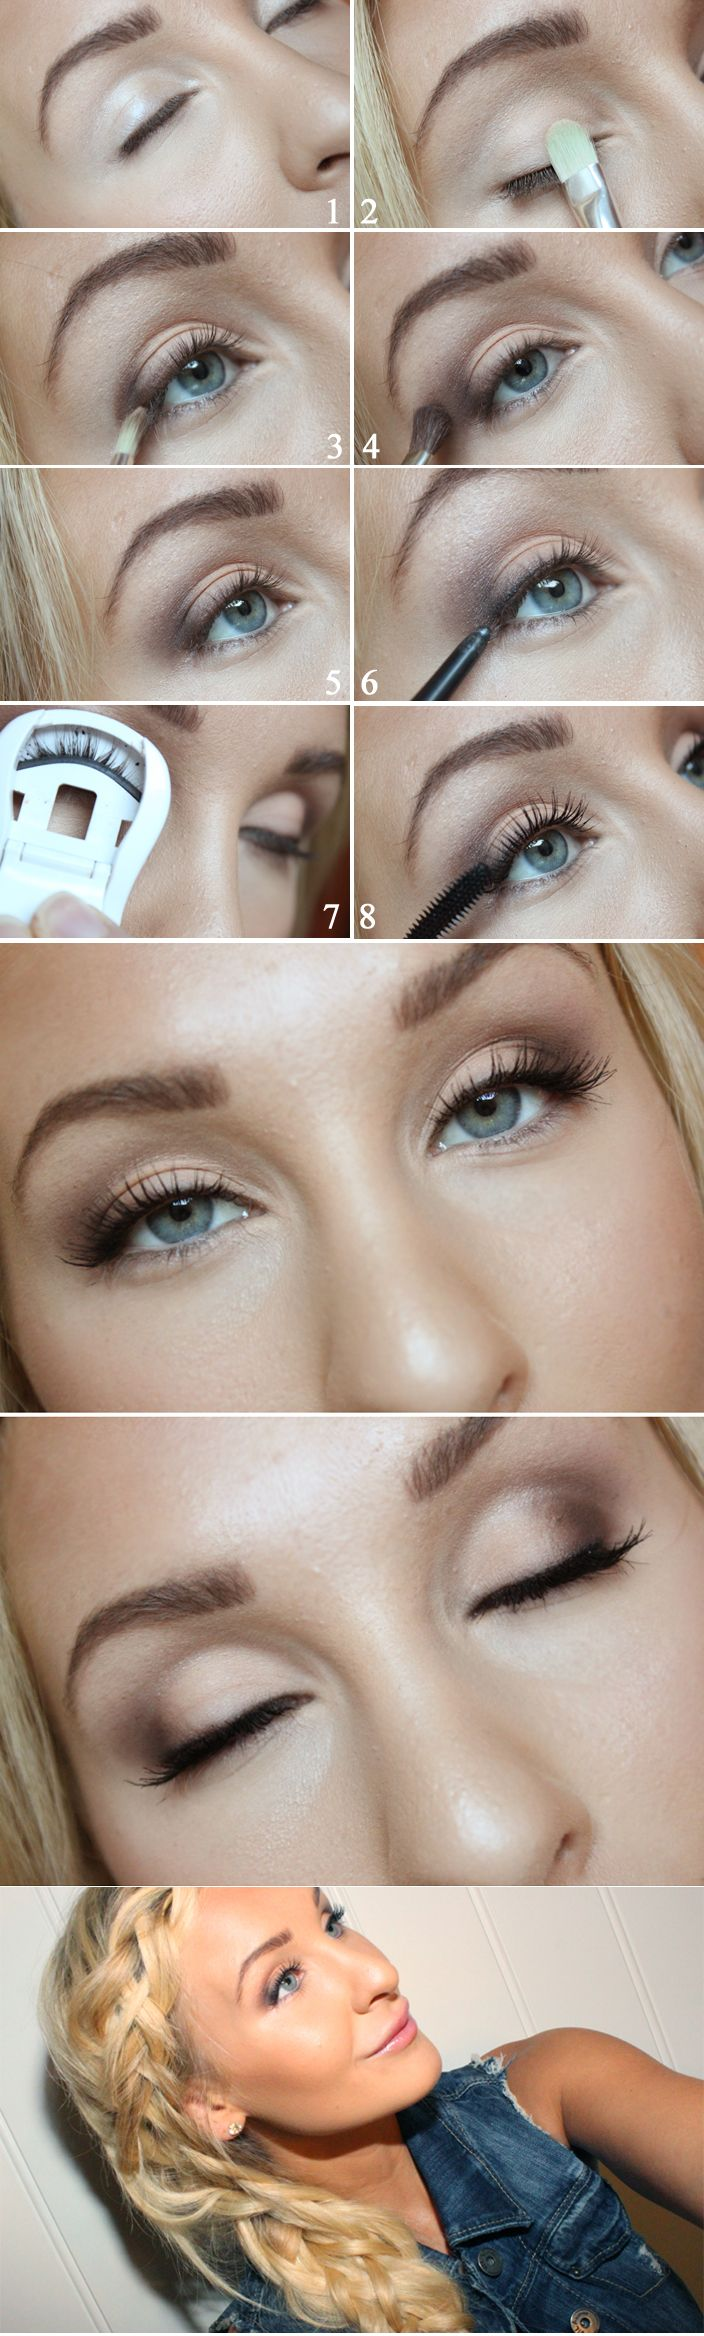 Helen Torsgården - Hiilens make-up blog | Beste make-up Zweden's blog meth geweldige make-ups, inspiratie, tutorials, make-up video's, produc ...